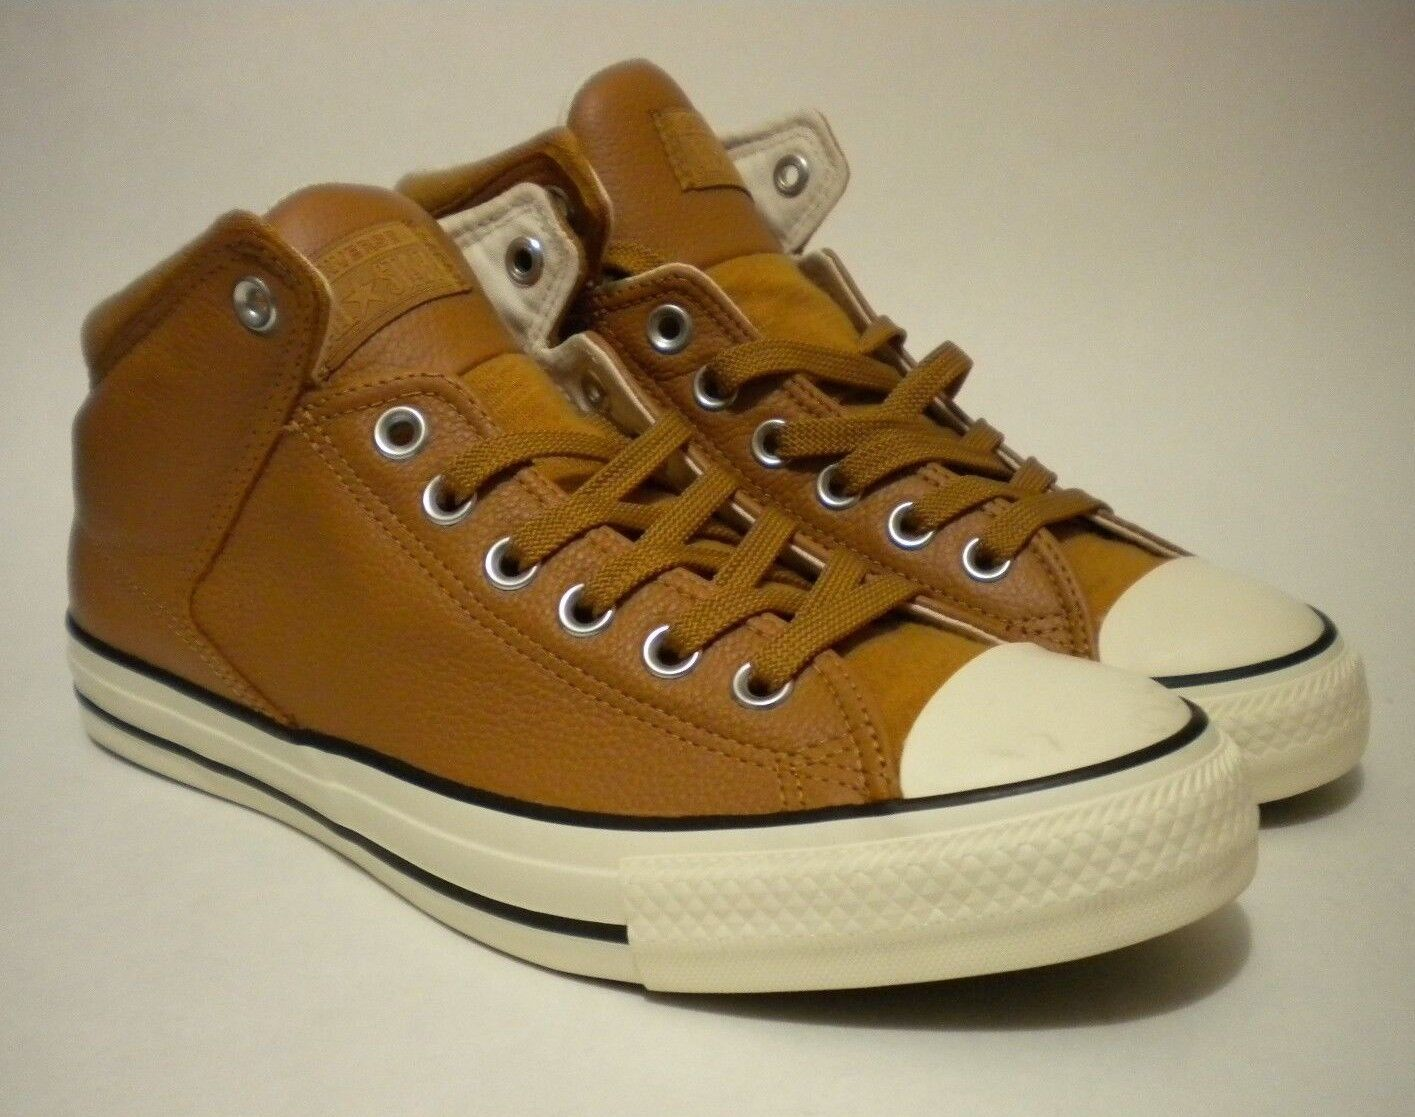 Converse Street CT All Star High Street Converse Hi Damen Sneaker High Top Größe 8.5 ed8b87